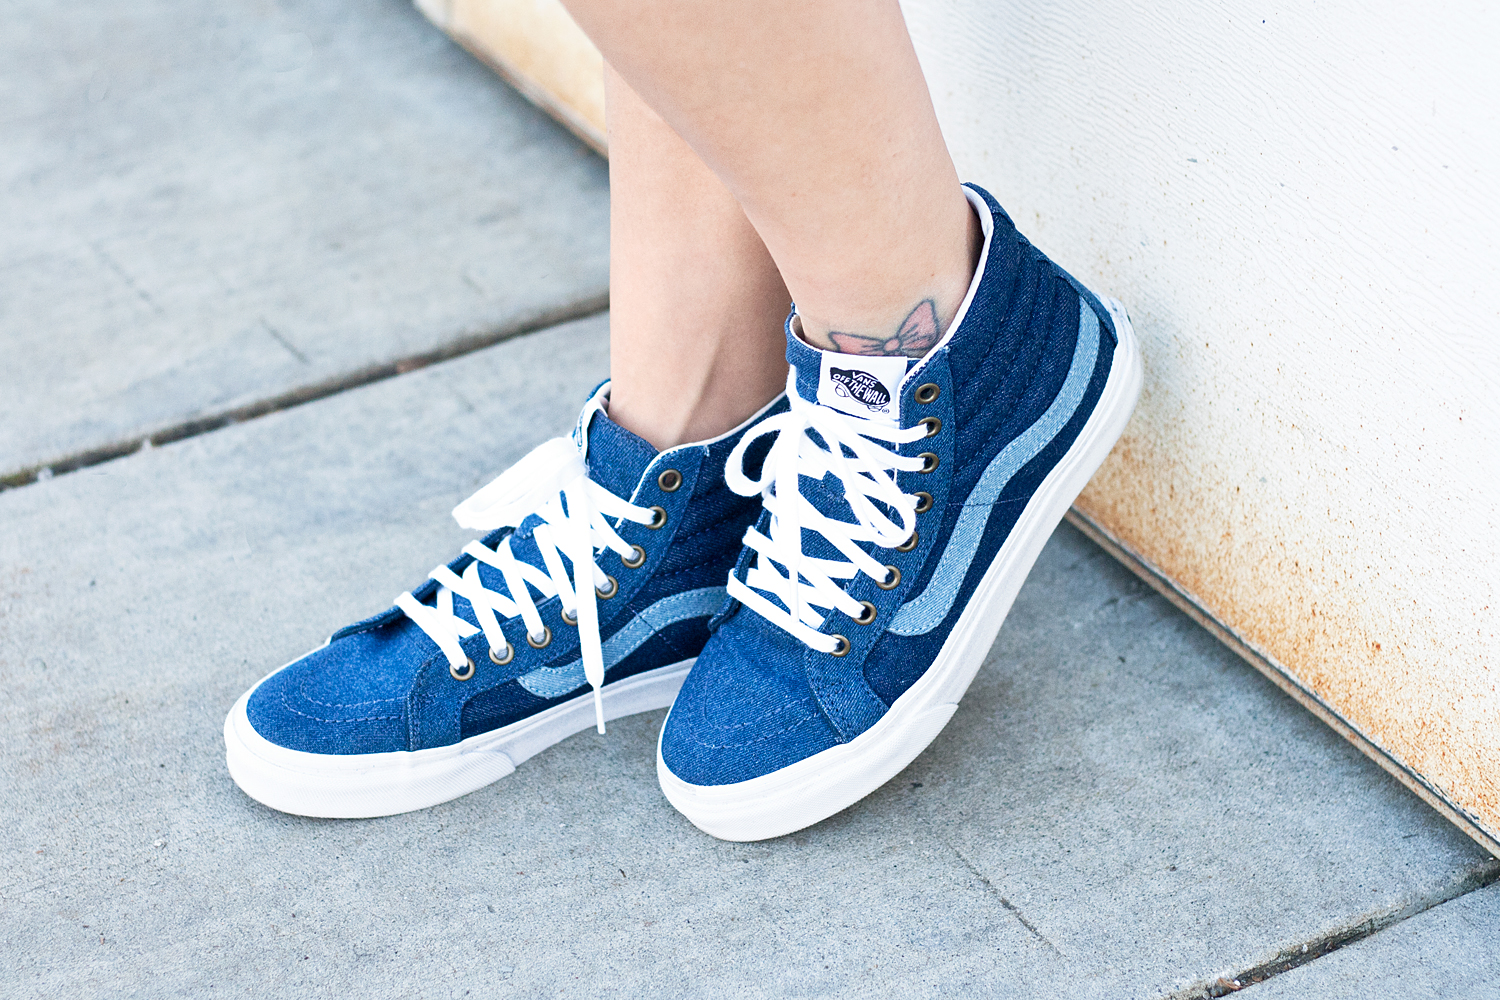 10madewell-vans-denim-blue-sneakers-hightops-sf-fashion-style